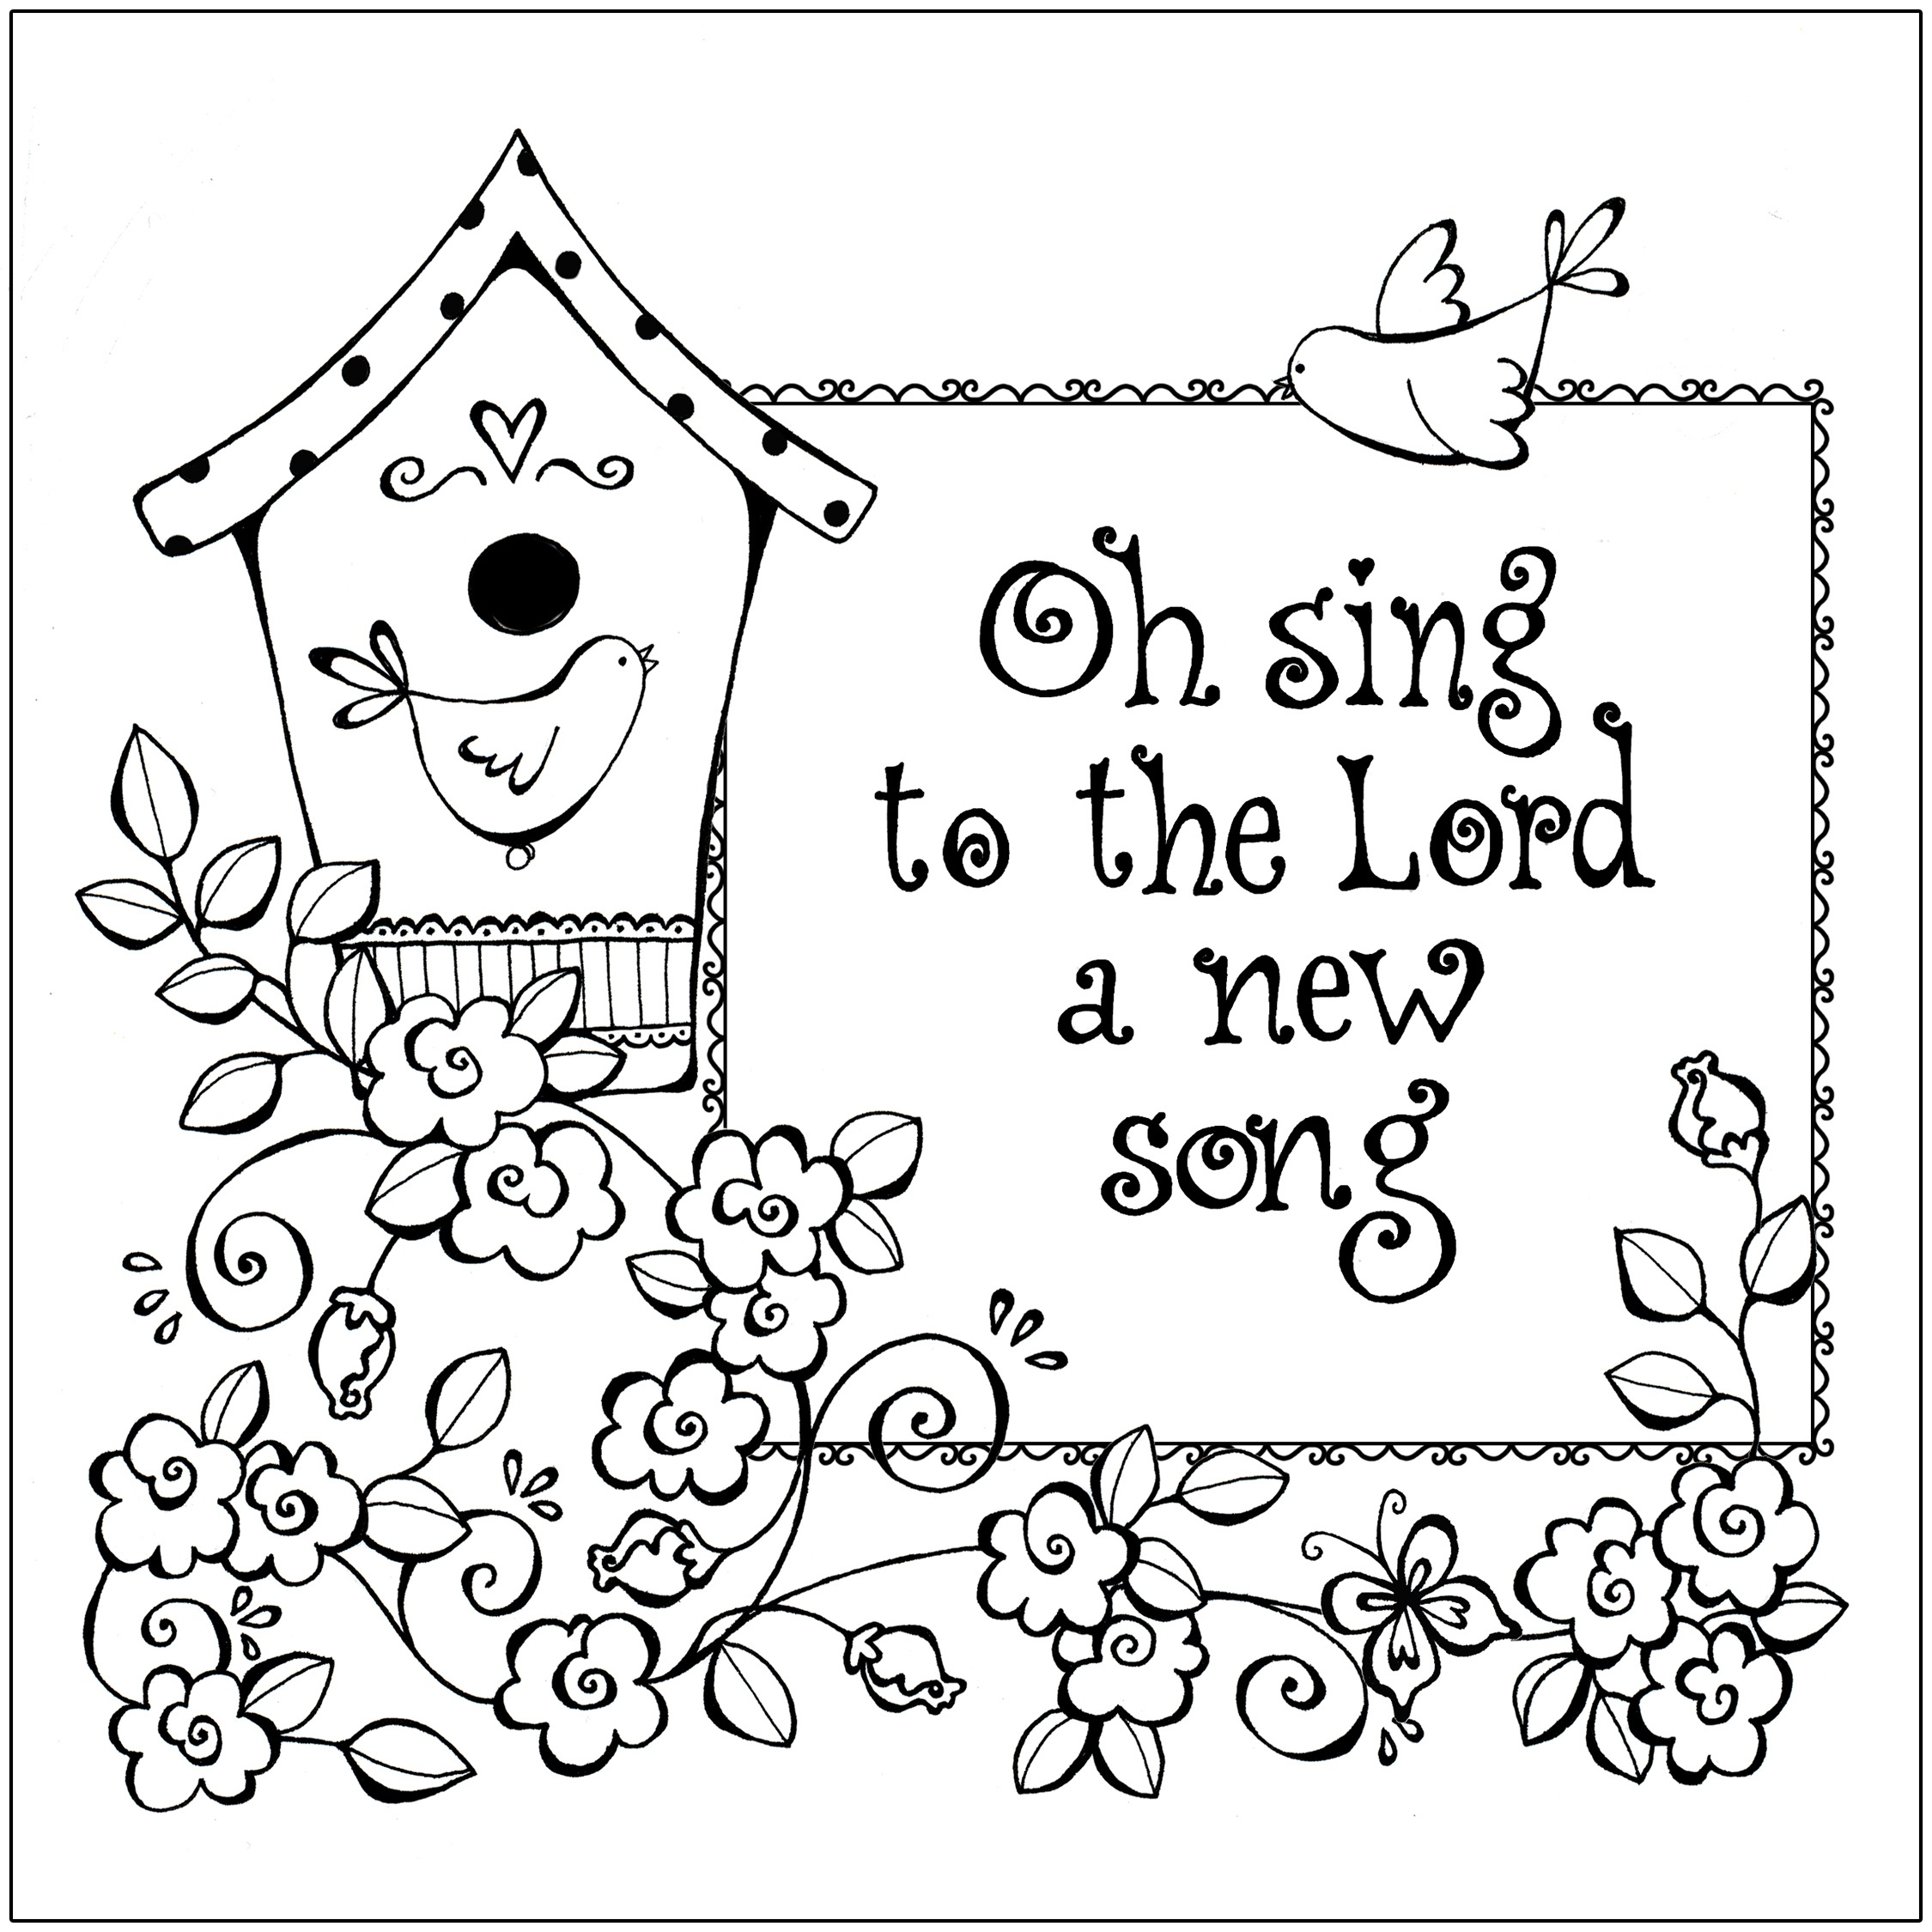 sunday school lesson coloring pages Collection-Fall Sunday School Coloring Pages Free Printable Sunday School Coloring Pages Lovely Kids Bible 8-m